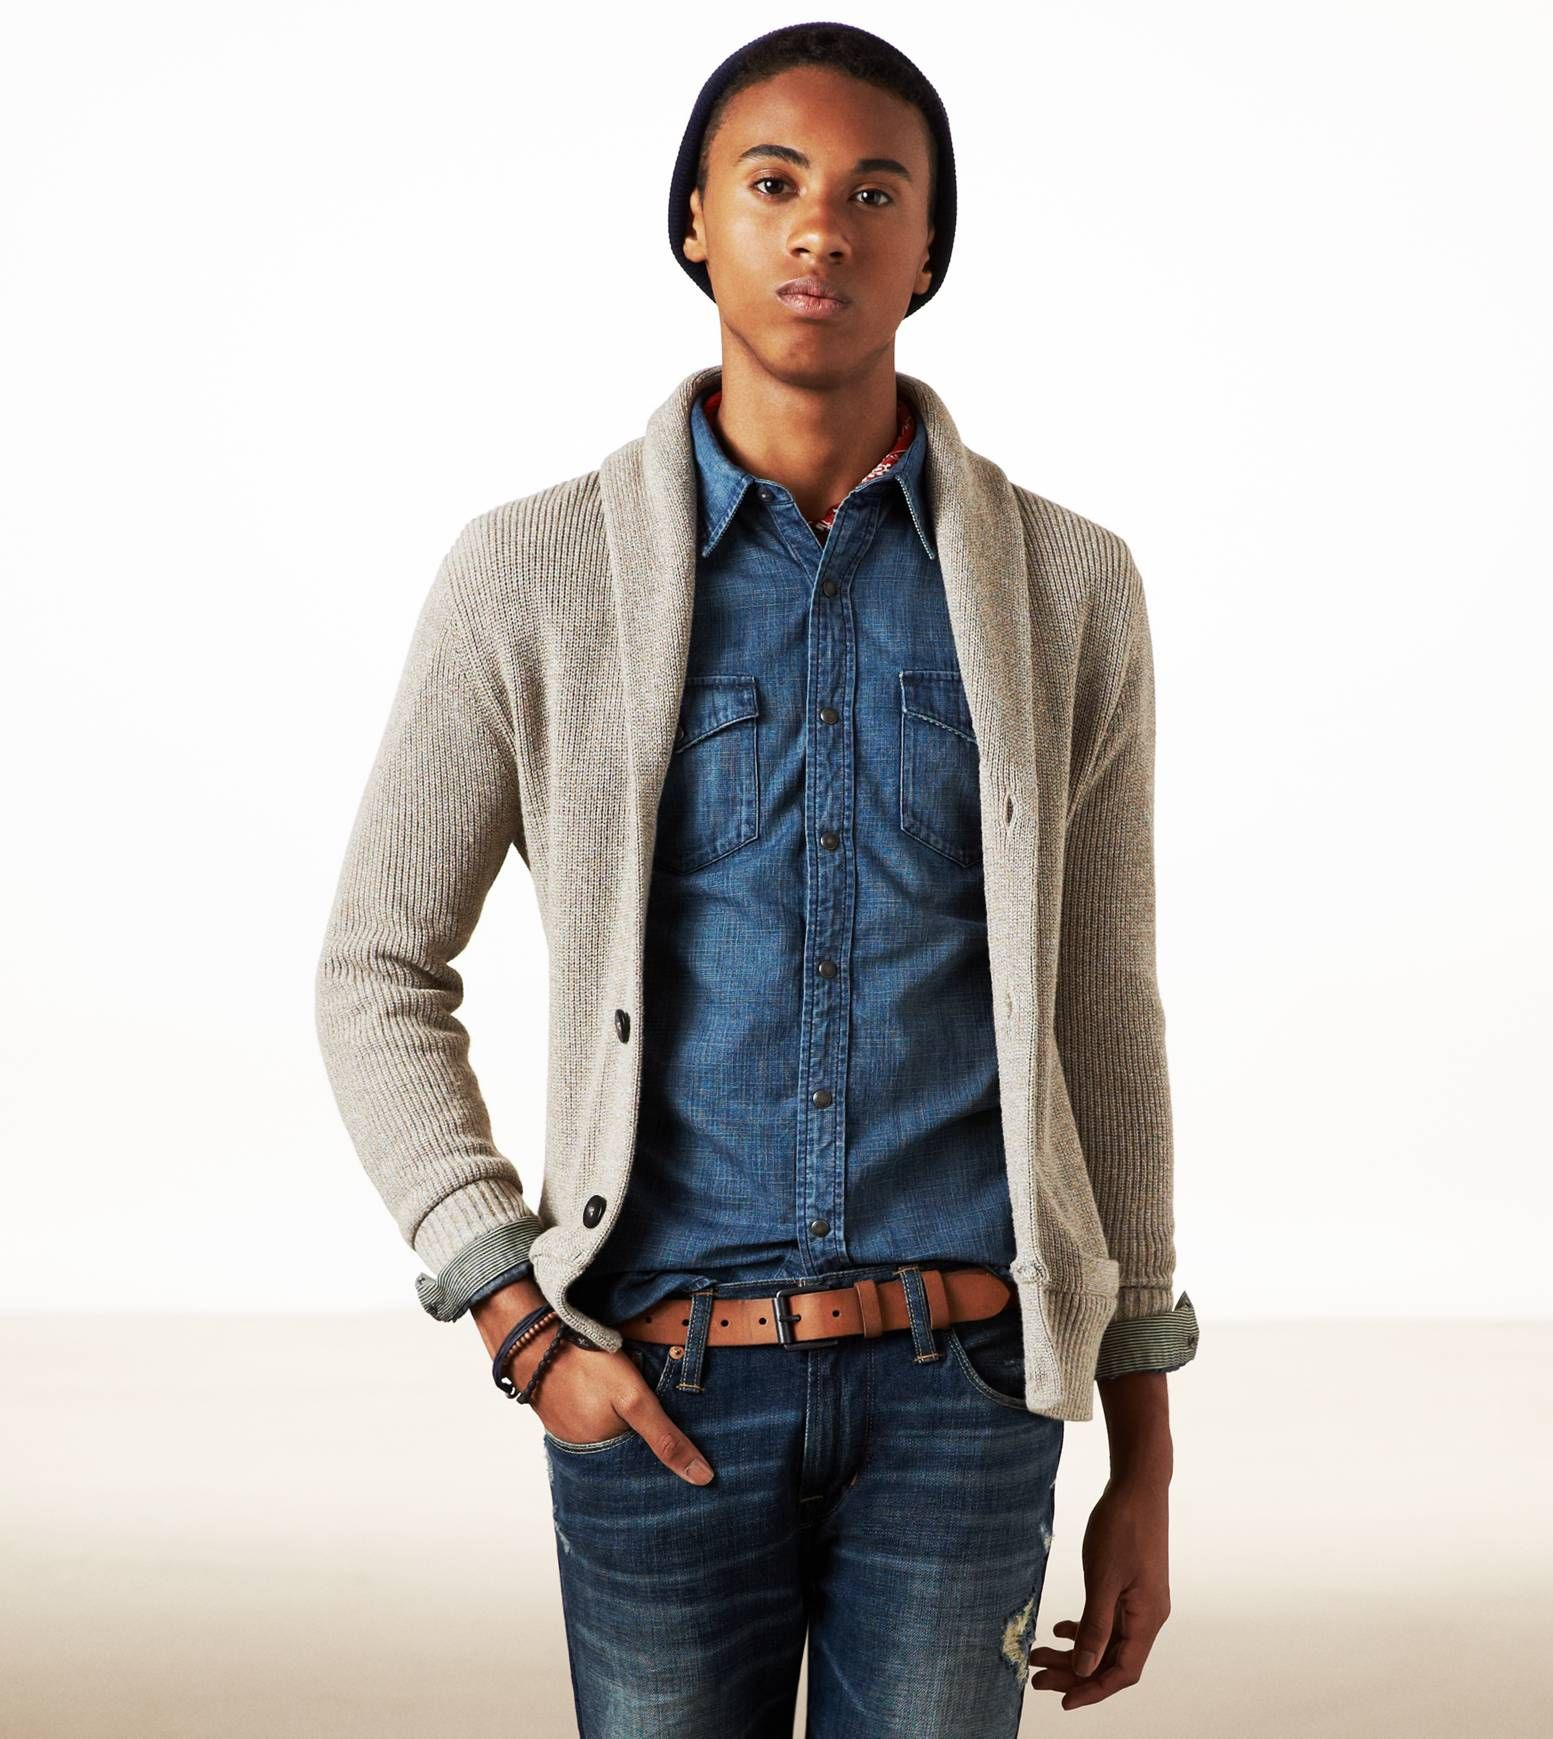 Oatmeal Sweater Over Denim Shirt Ae Mensstyle Fall Winter